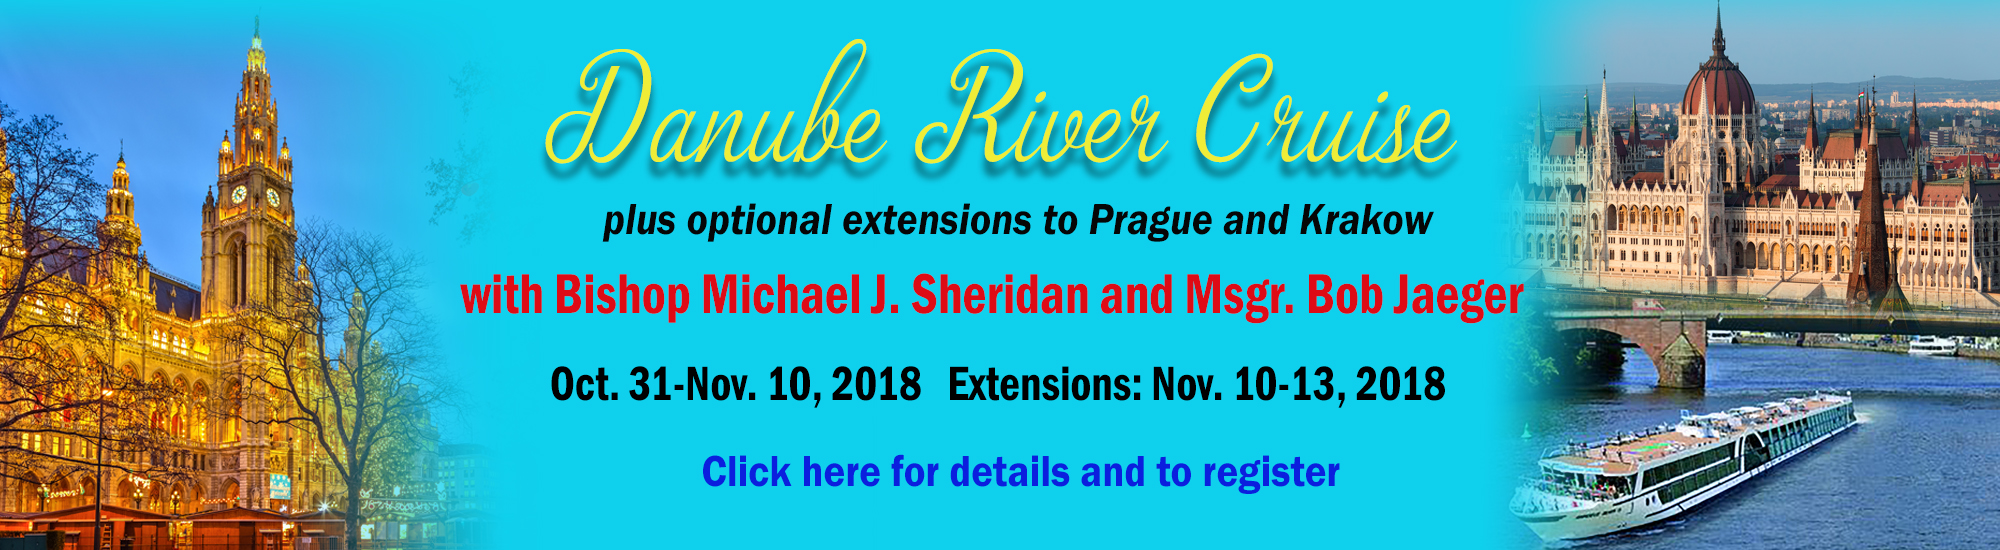 Bishop Sheridan Danube Cruise